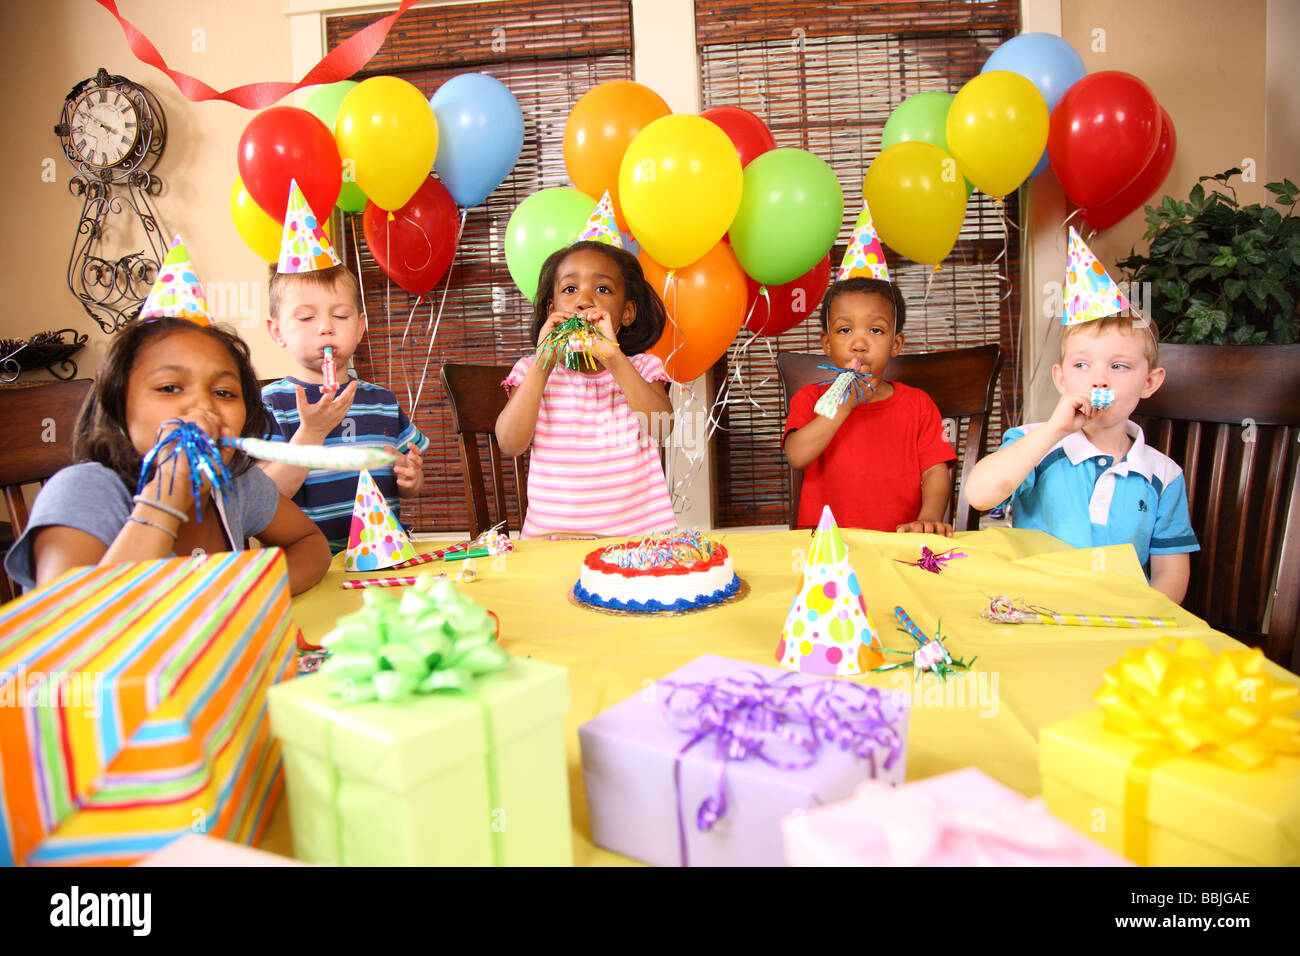 Children at birthday party blowing noise makers - Stock Image